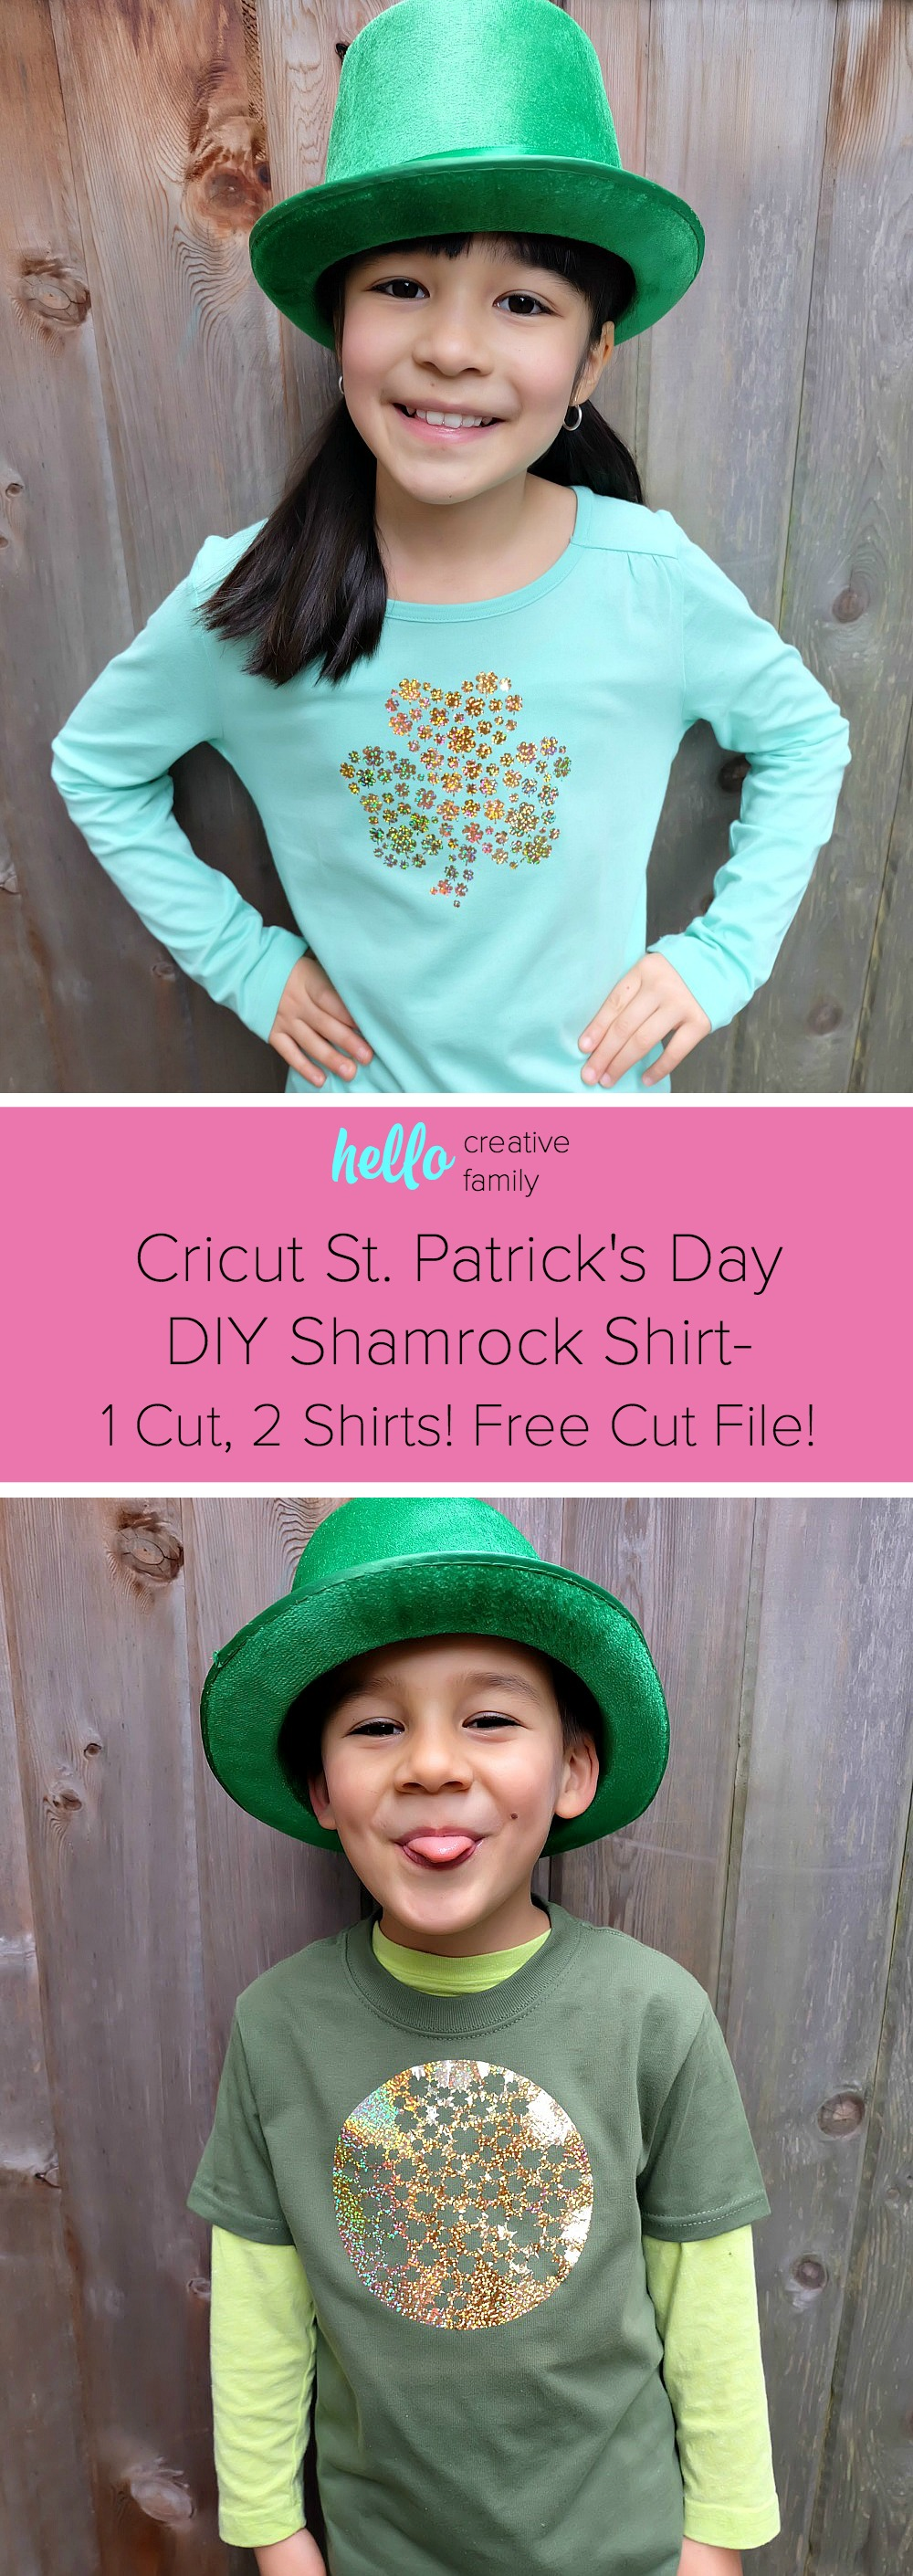 Celebrate St. Patrick's Day in style with this adorable DIY shamrock shirt! Make this project using your Cricut Maker or Cricut Explore. With this unique design one cut can make two shirts! Includes free cut file! A fun shirt for kids or adults! #cricutmade #cricutmaker #cricutholiday #KidsClothes